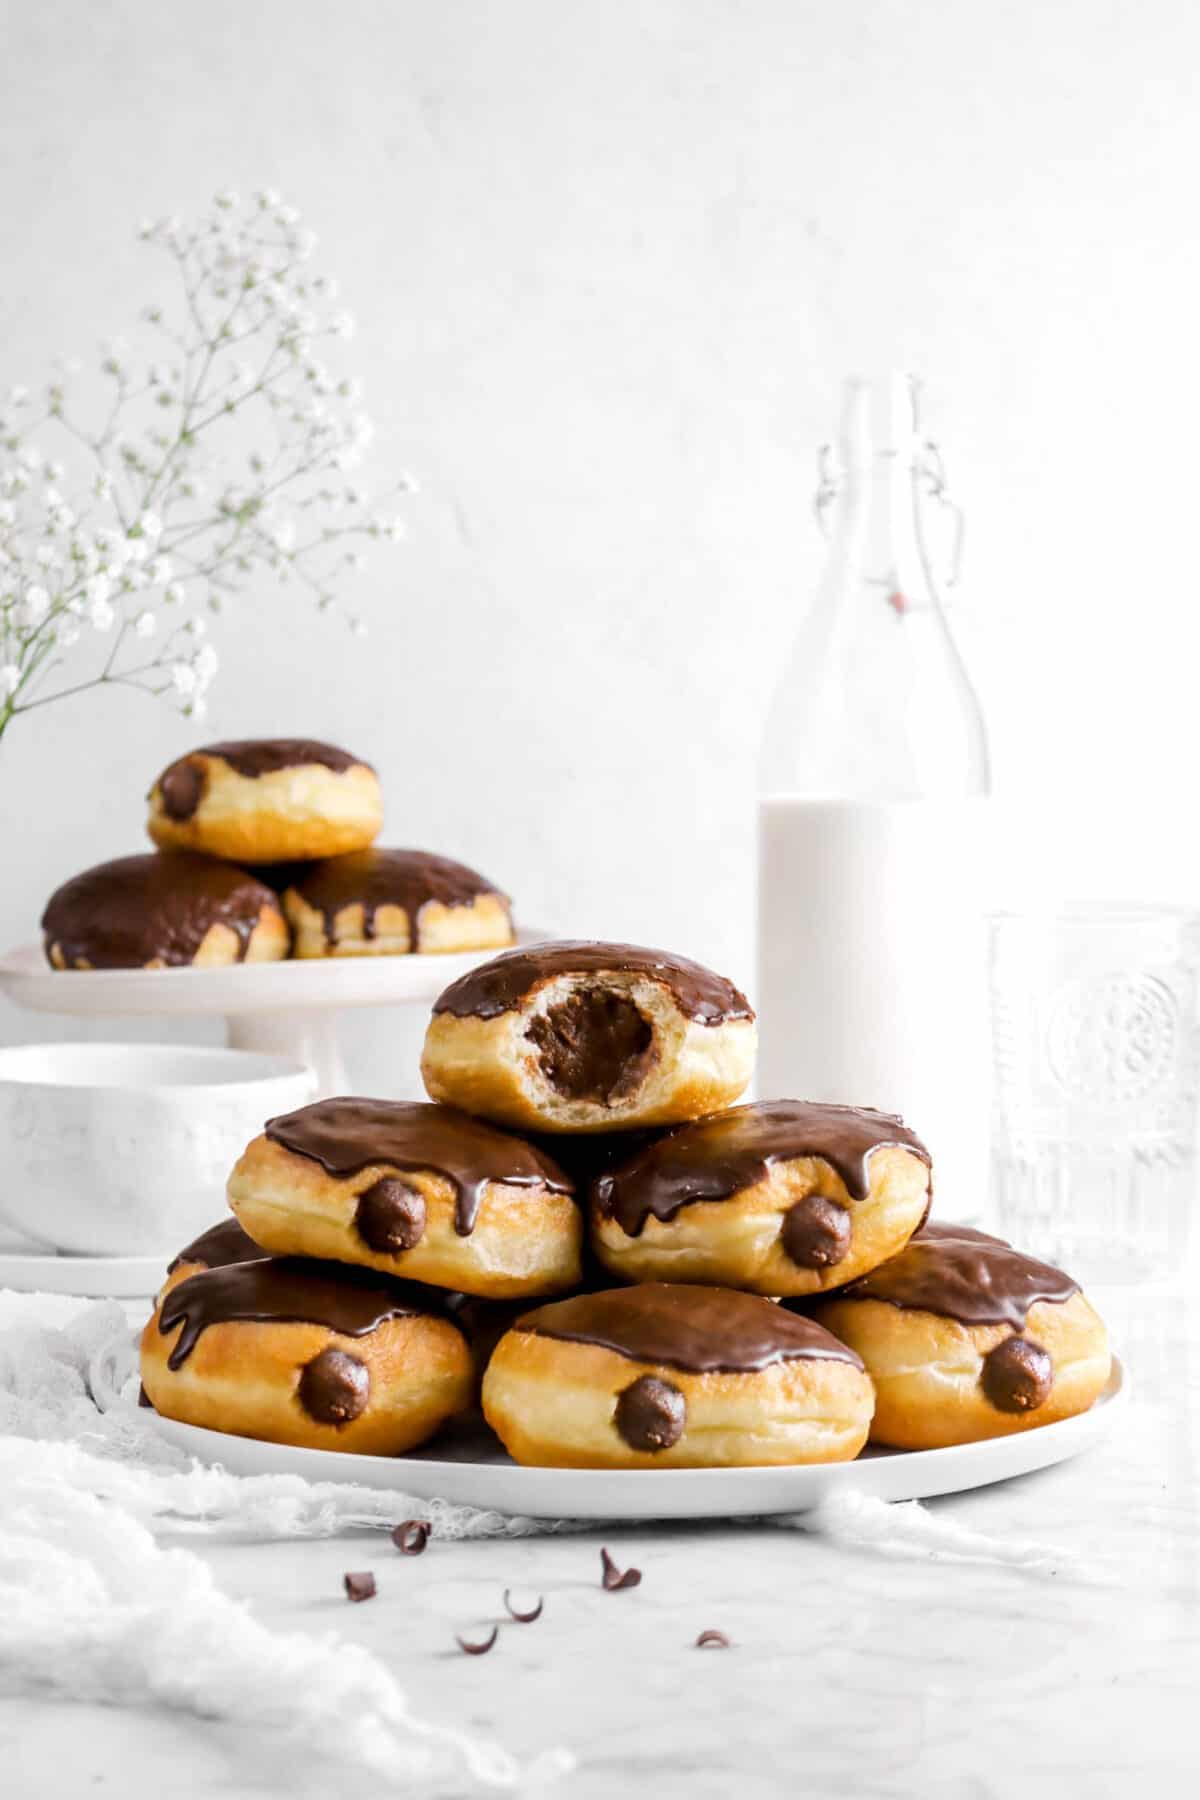 stacked chocolate filled doughnuts with milk behind, a cake stand of doughnuts, and flowers